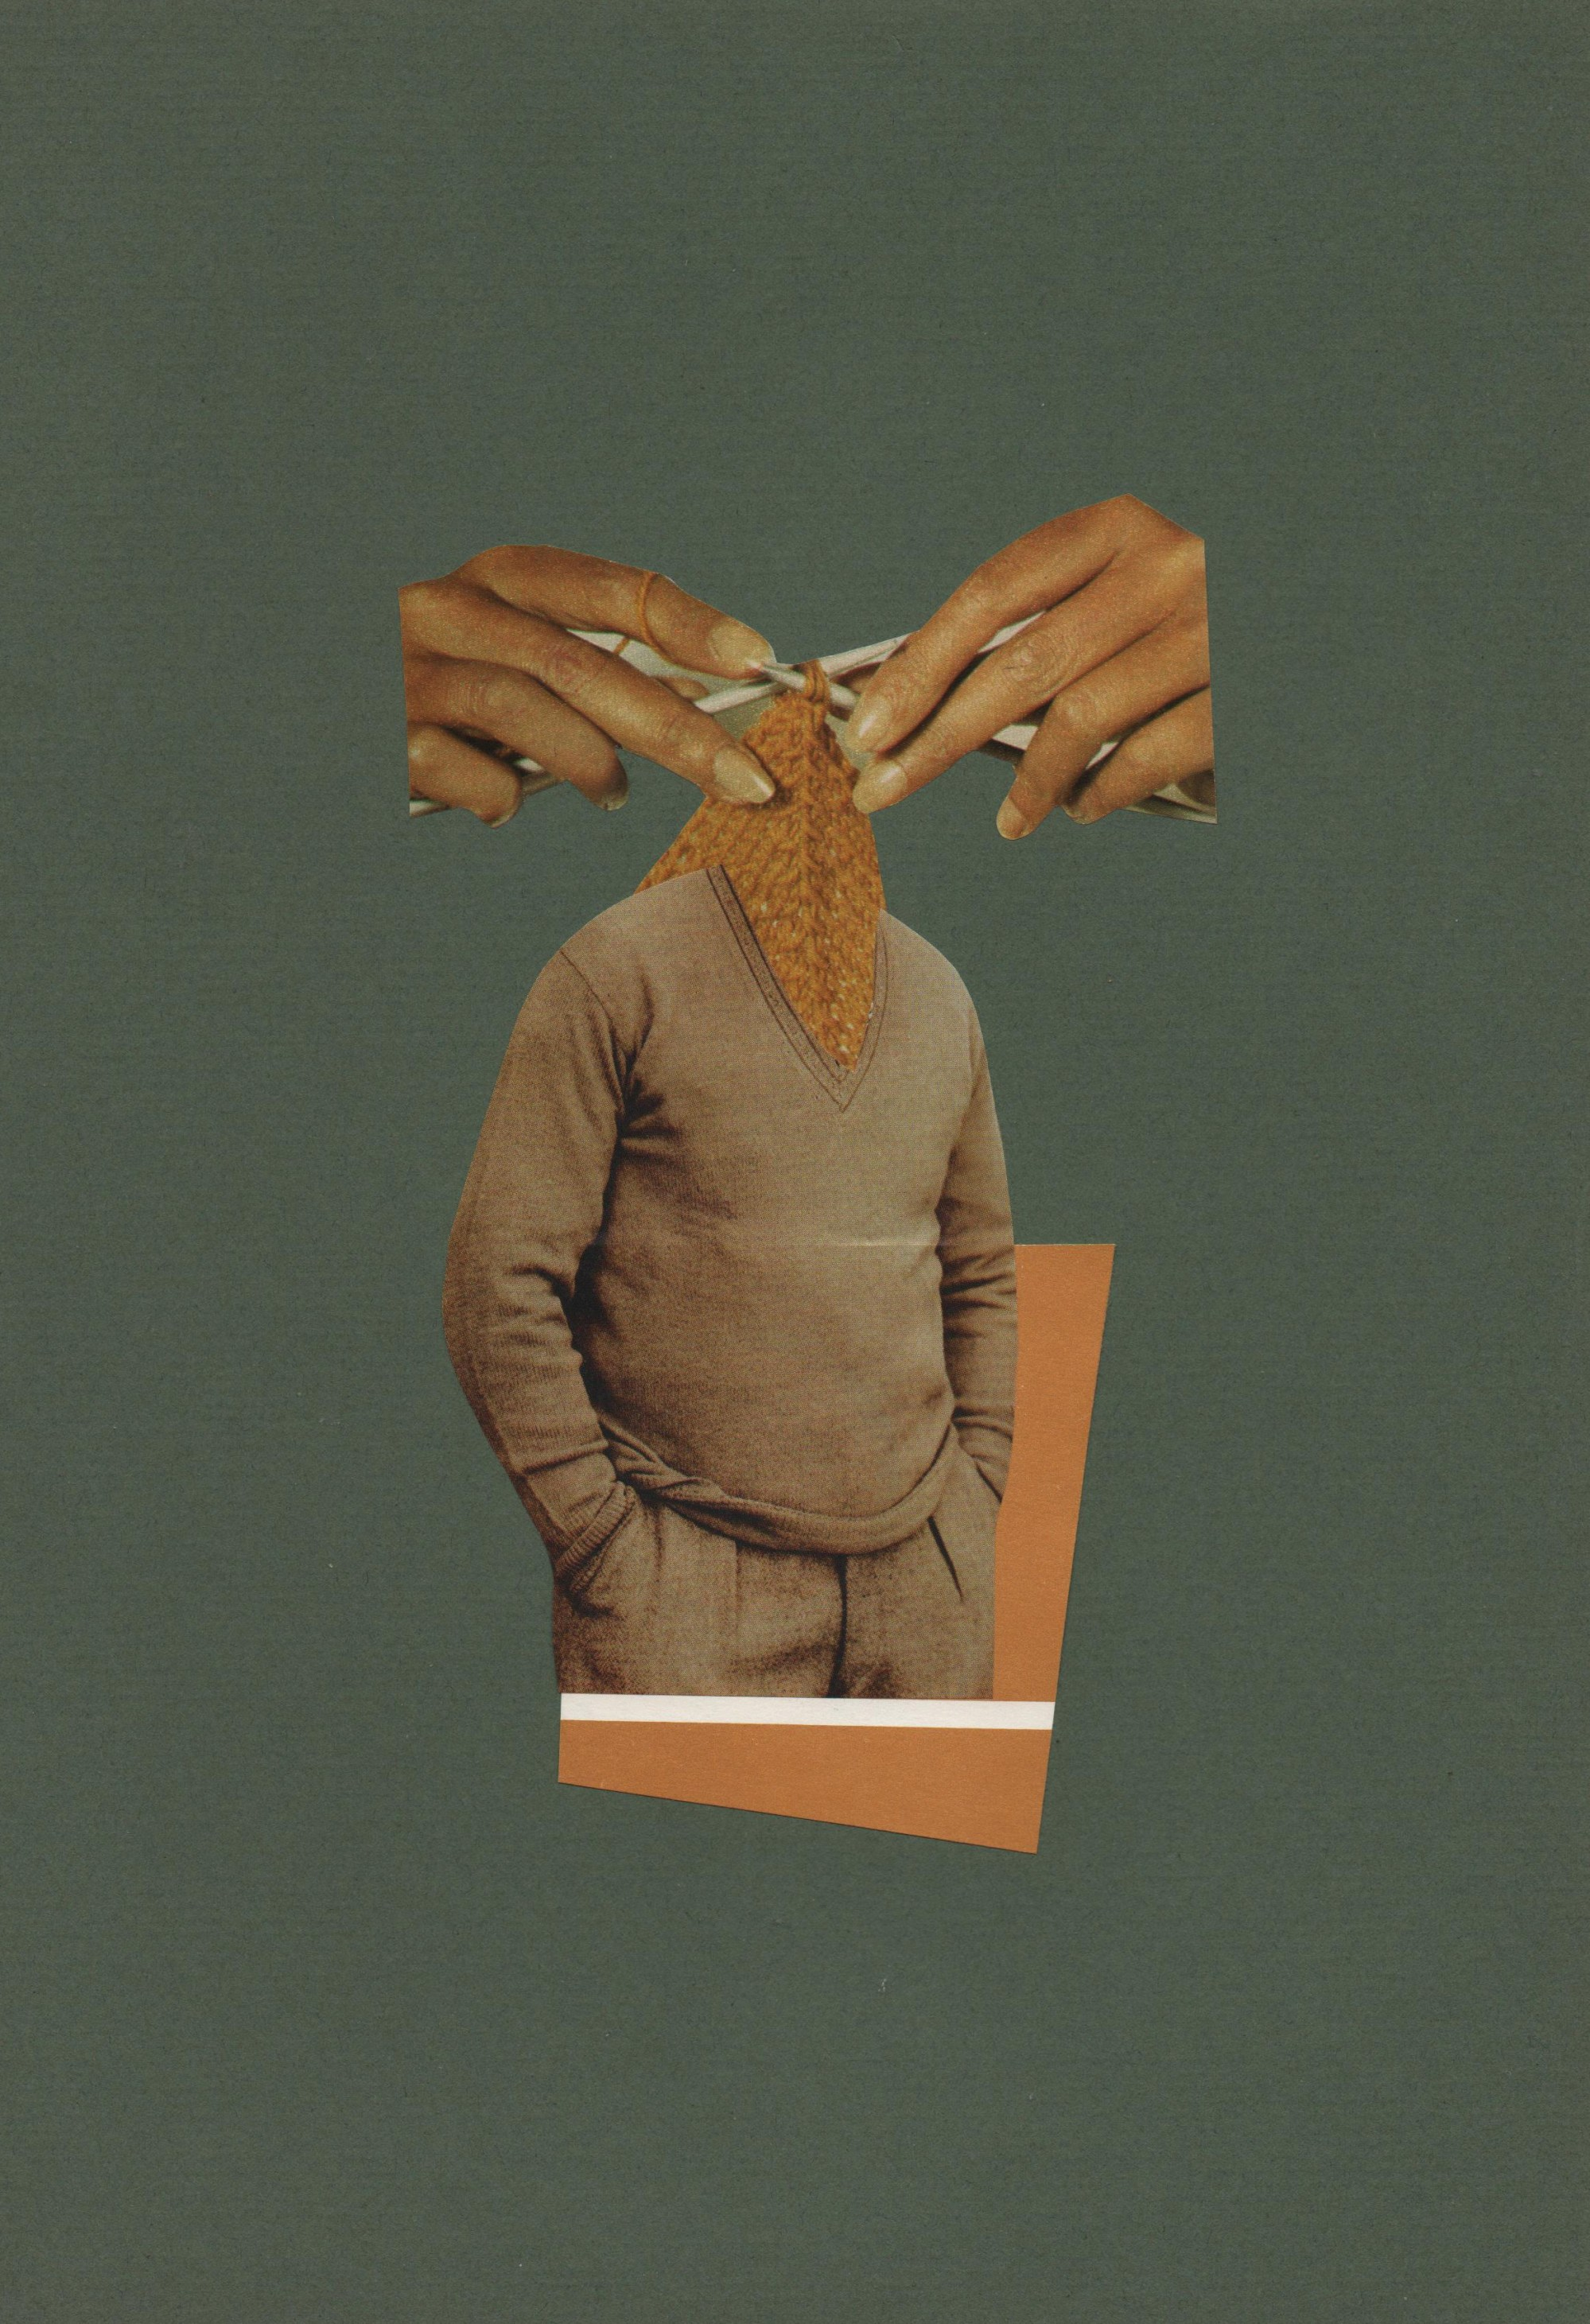 mixed-media-collages-by-rozenn-le-gall-2